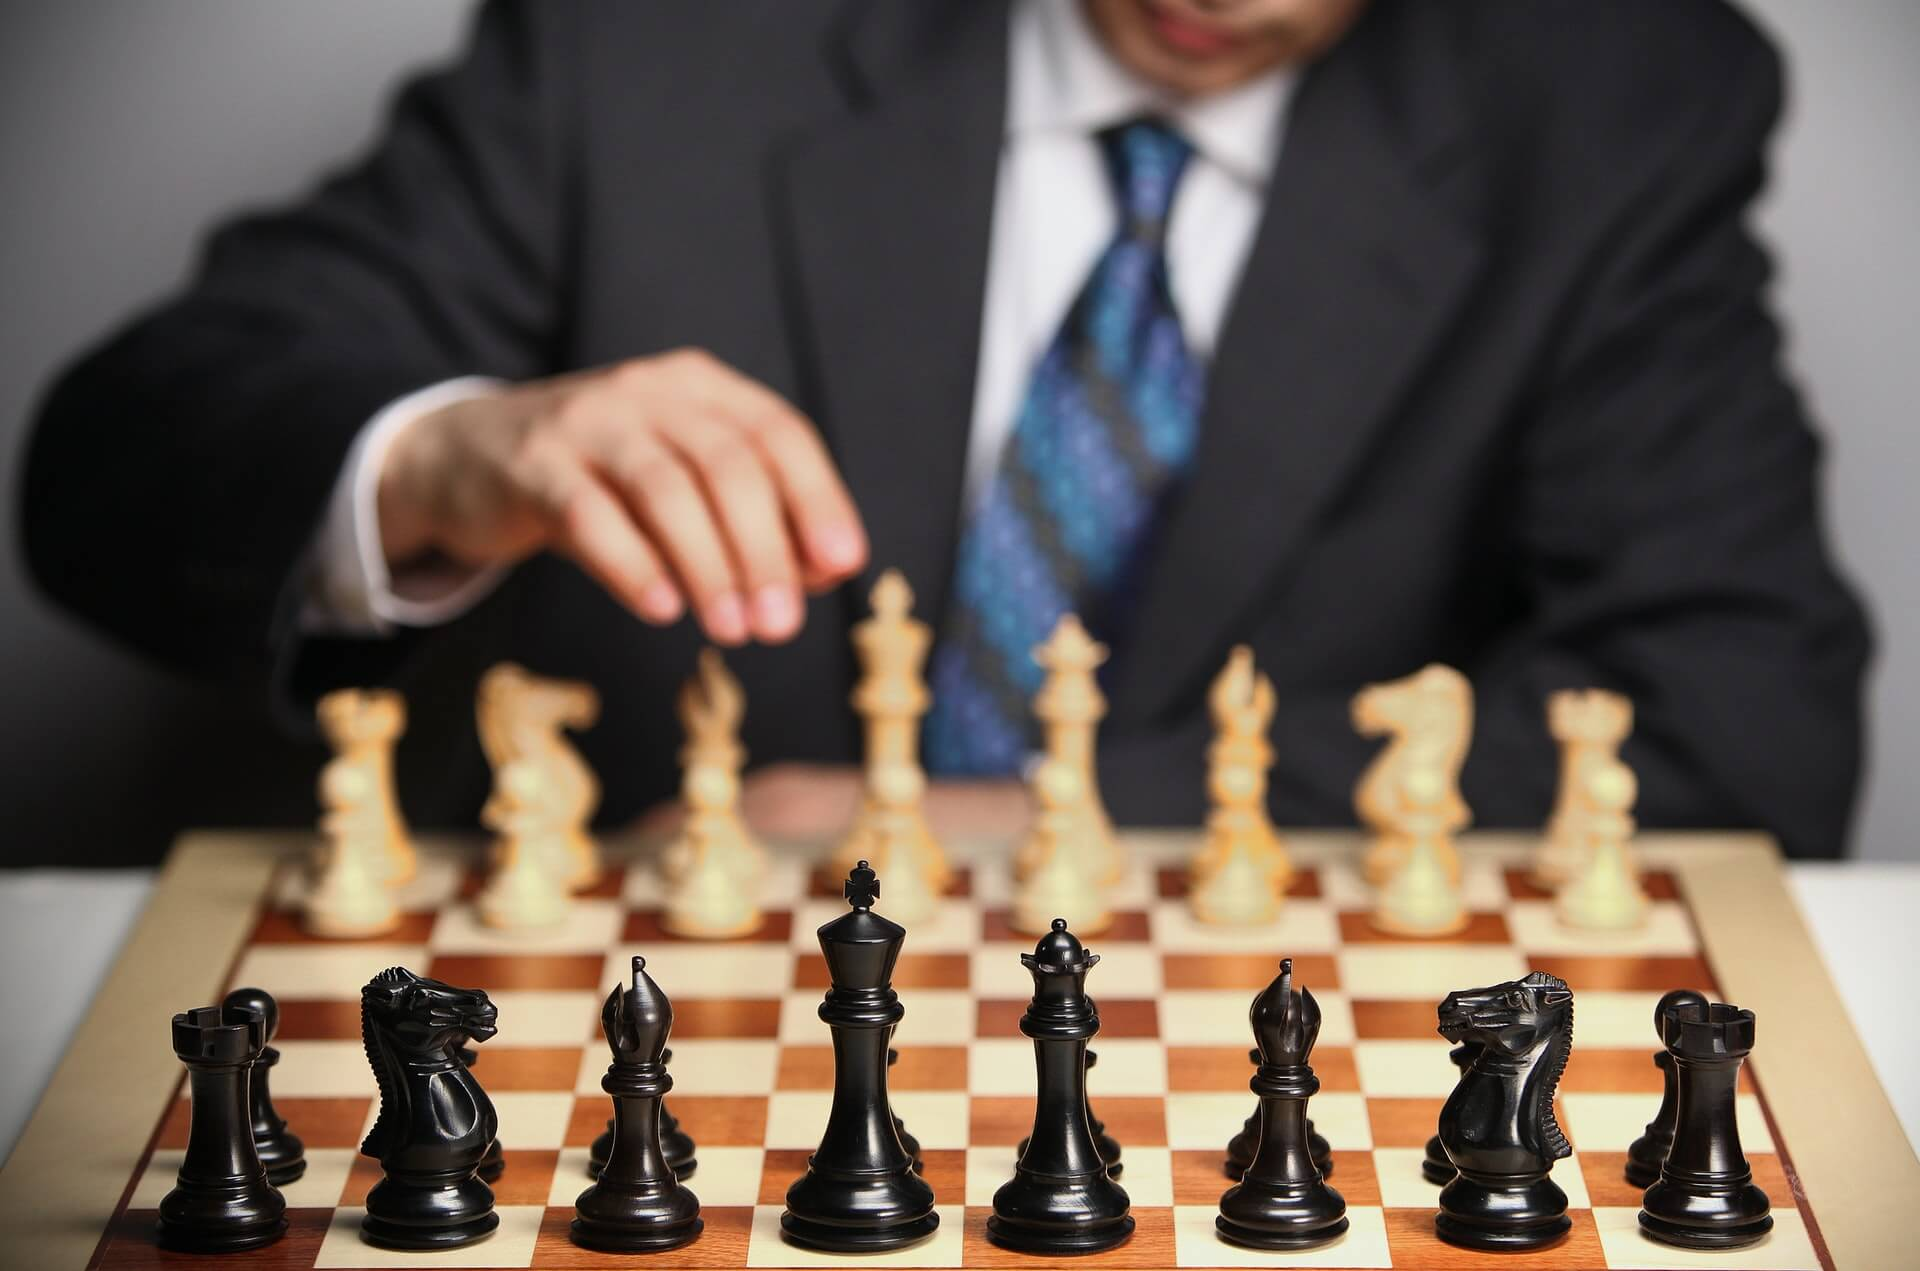 POV image of business man playing chess with black pieces facing viewer